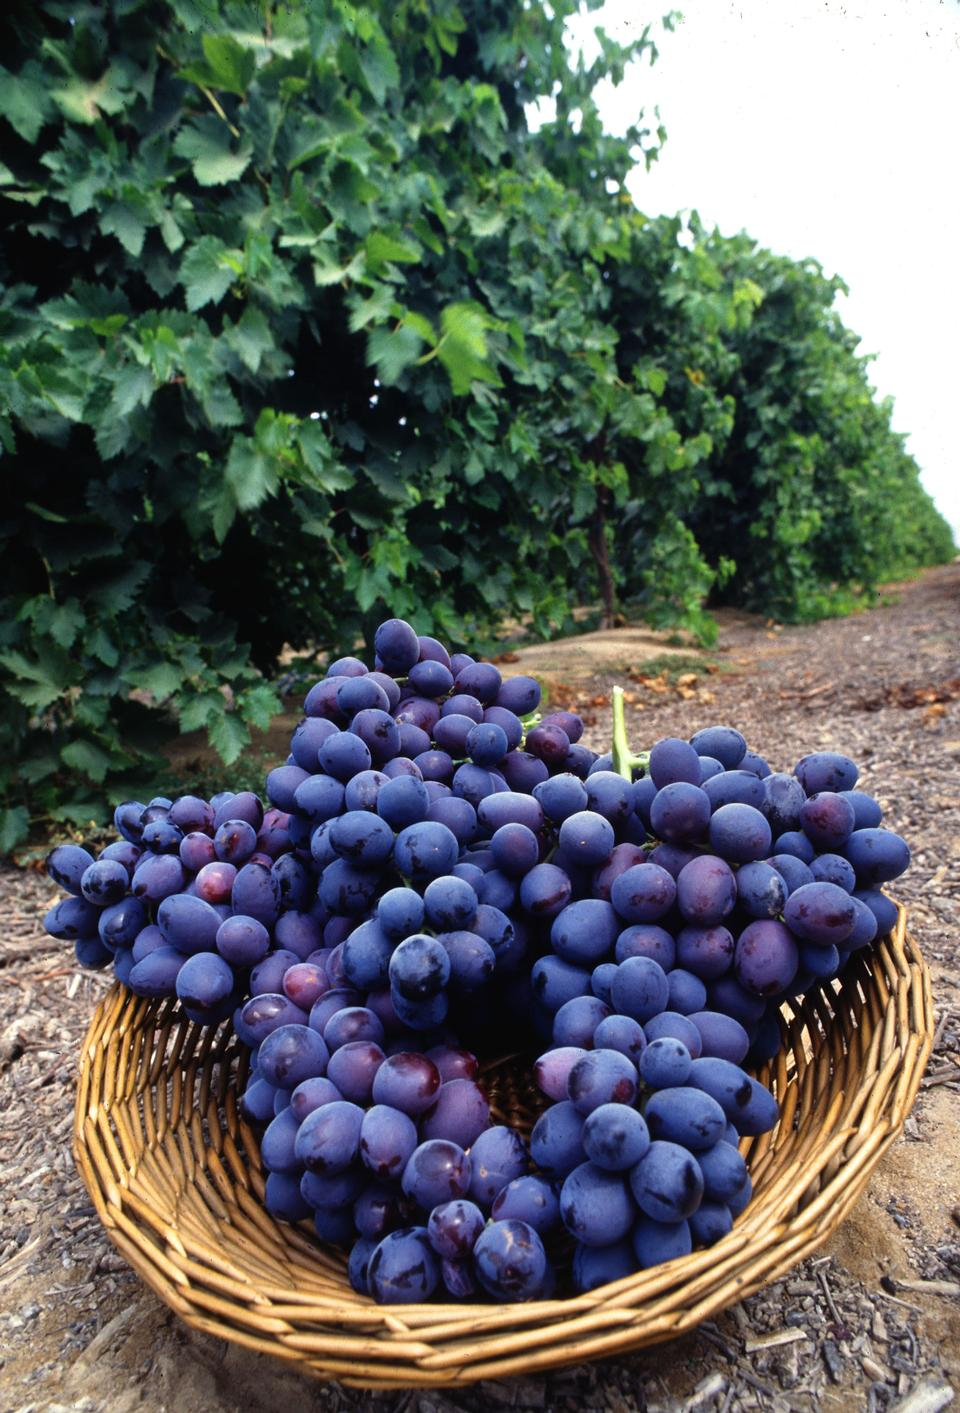 Free A Basket Of Seedless Grapes